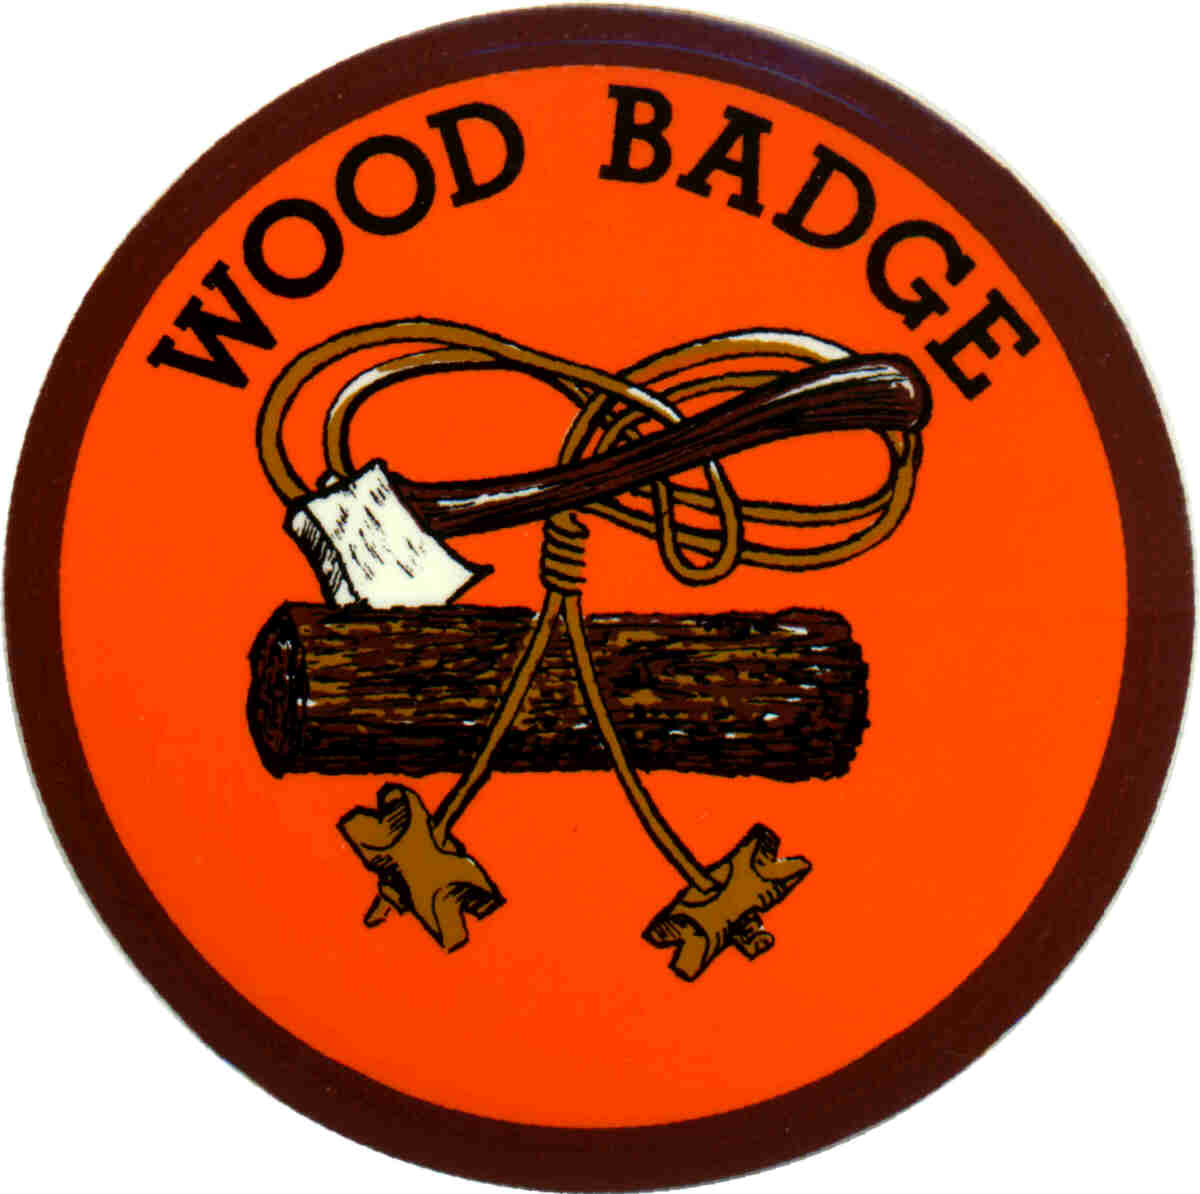 Woodbadge clipart 4 » Clipart Station.